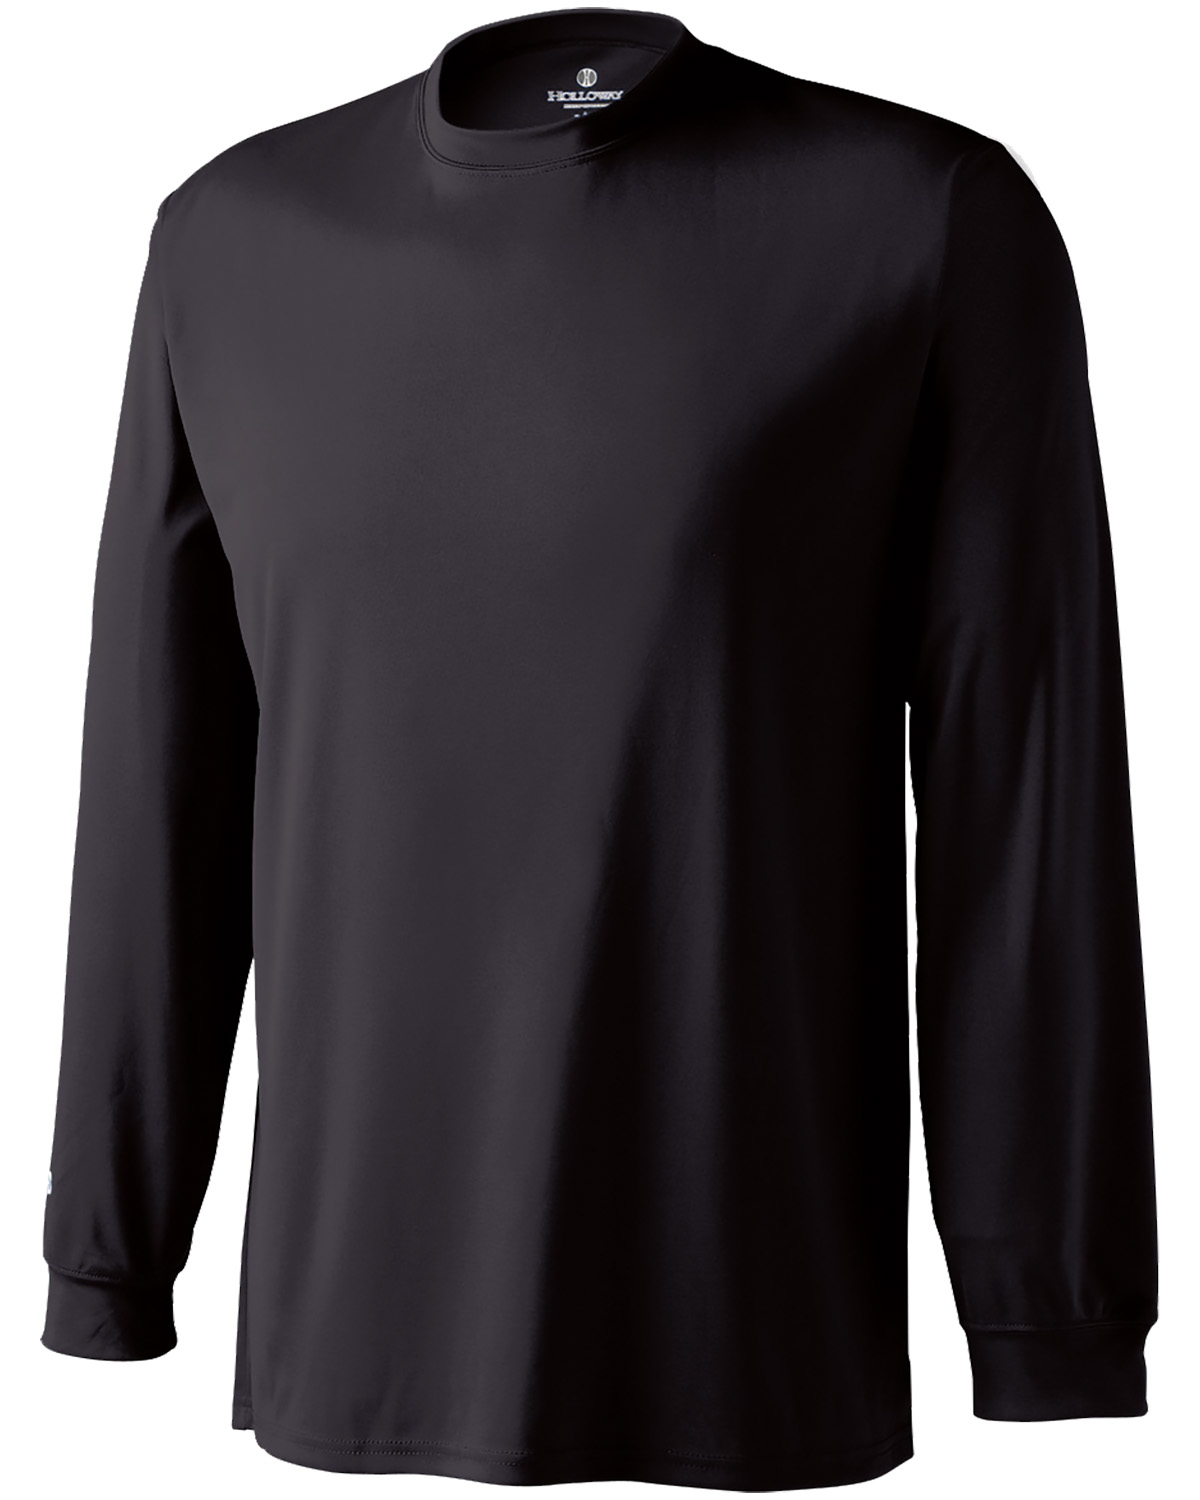 Holloway 222621 - Youth Polyester Long Sleeve Spark 2.0 Shirt